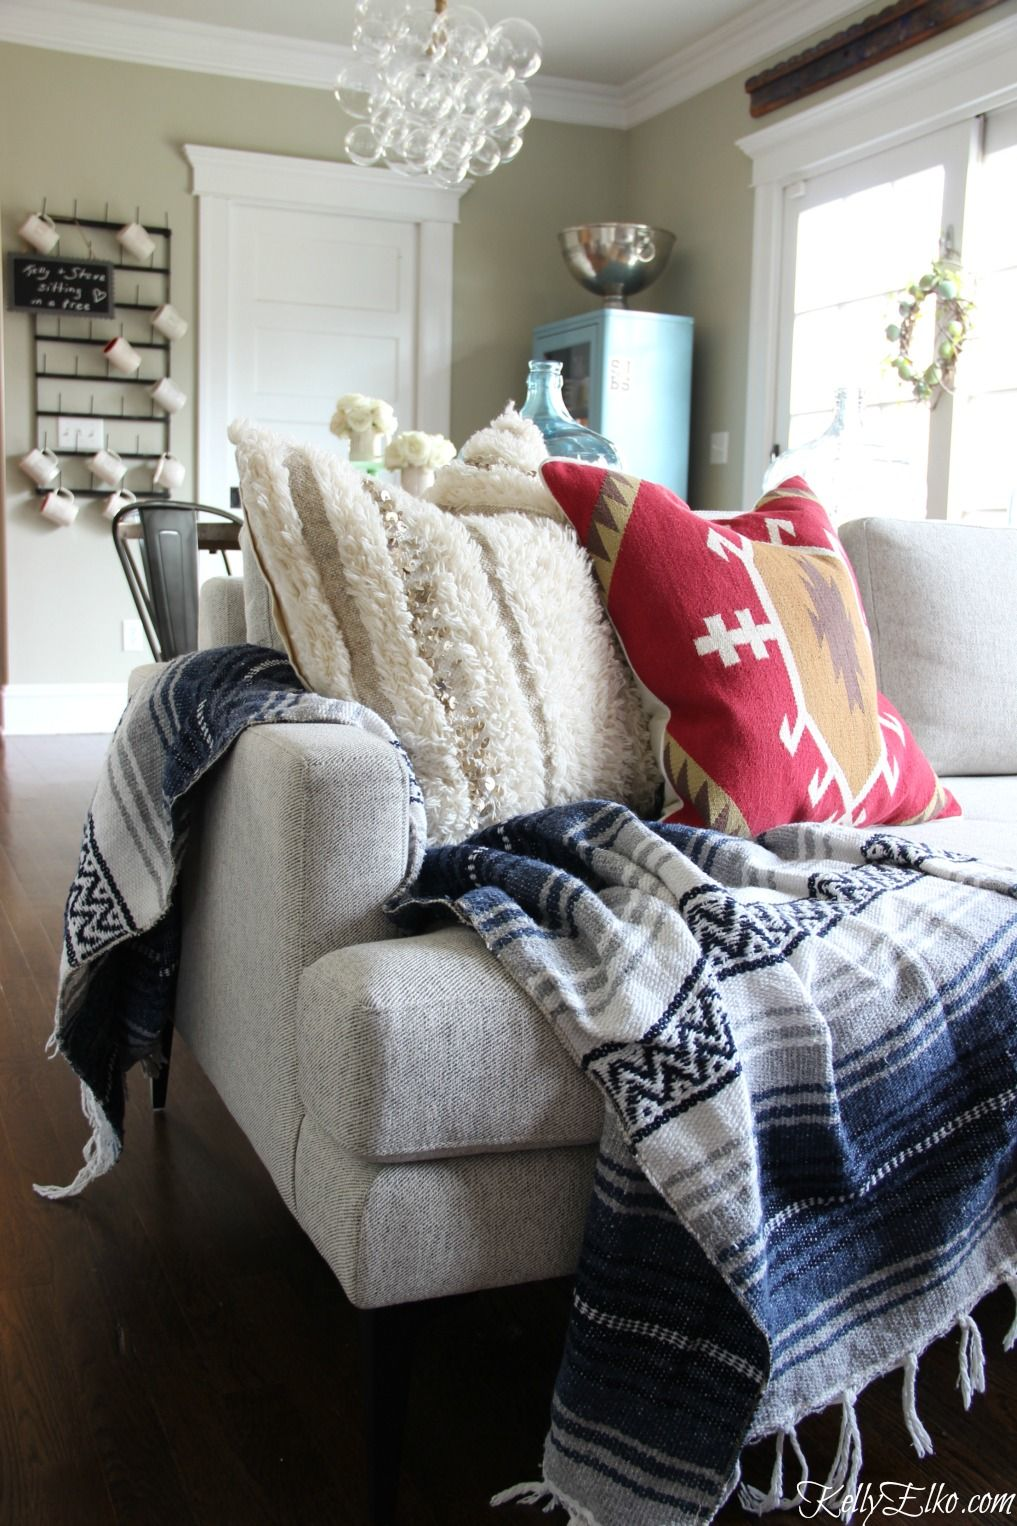 My New Sectional Sofa And Buying Tips Living Room Inspiration Family Room Decorating Sofa Buying Guide